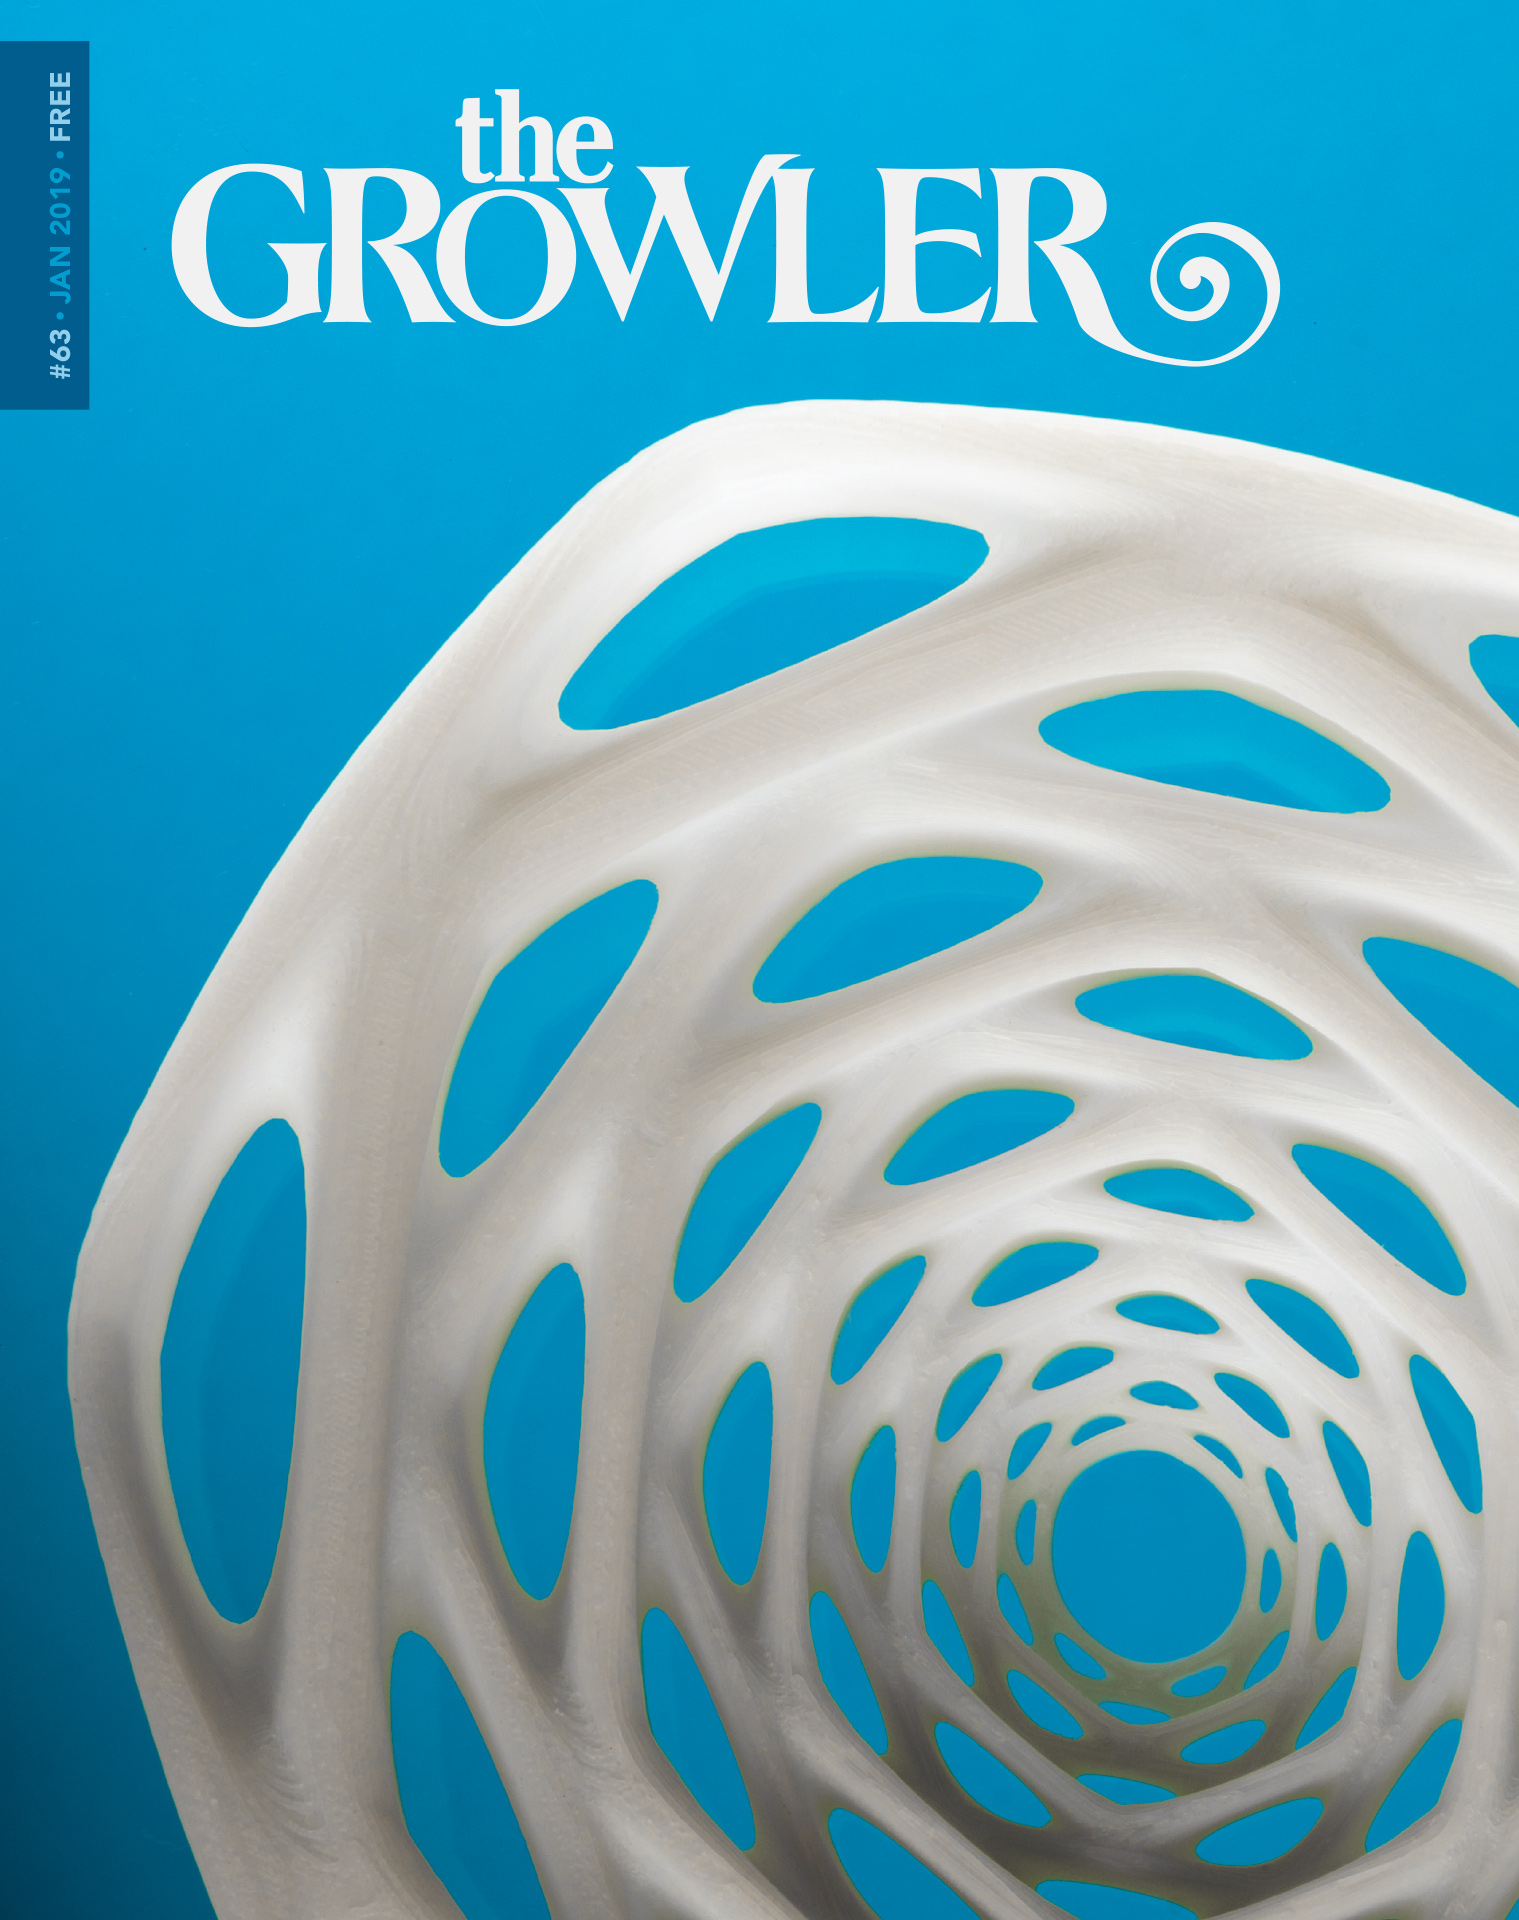 The cover created by Brad Jirka for the Growler's January issue, and photographed by Tj Turner